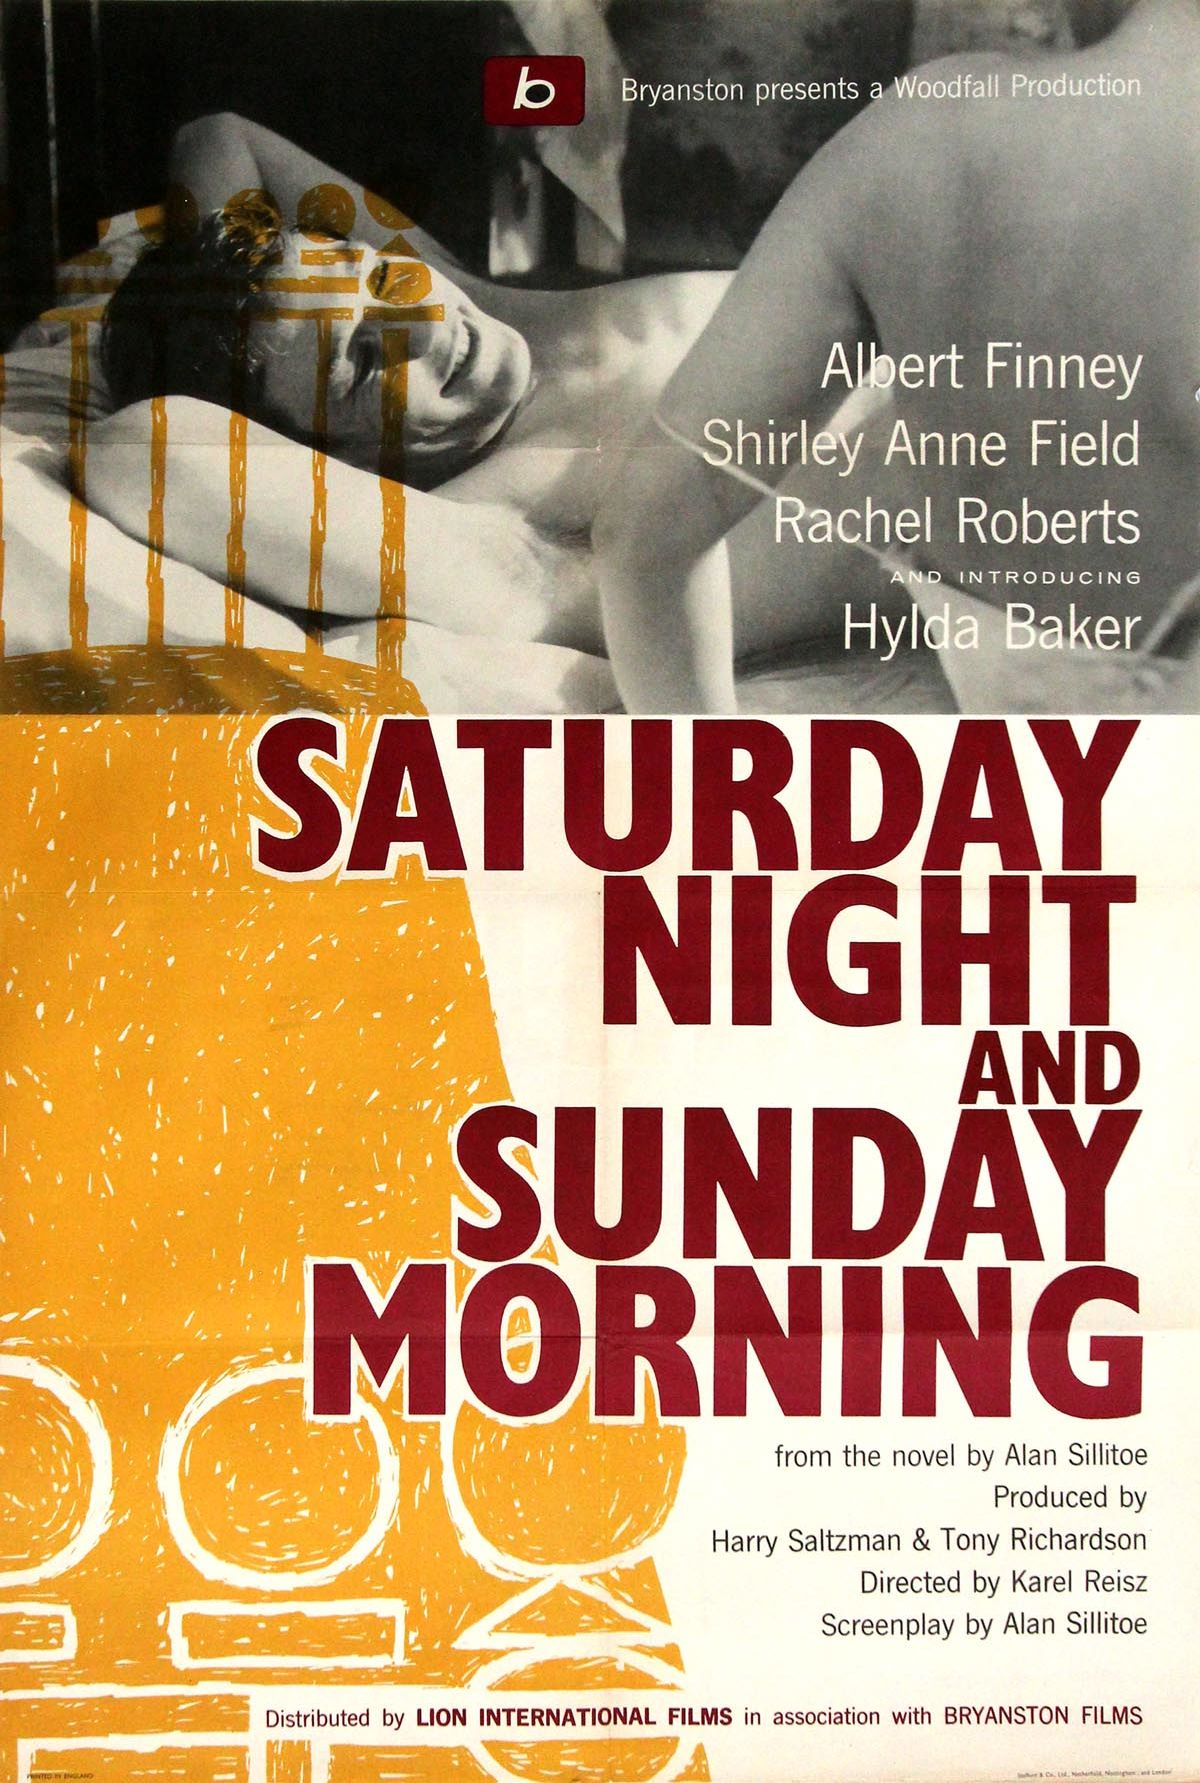 'Saturday Night and Sunday Morning' movie poster